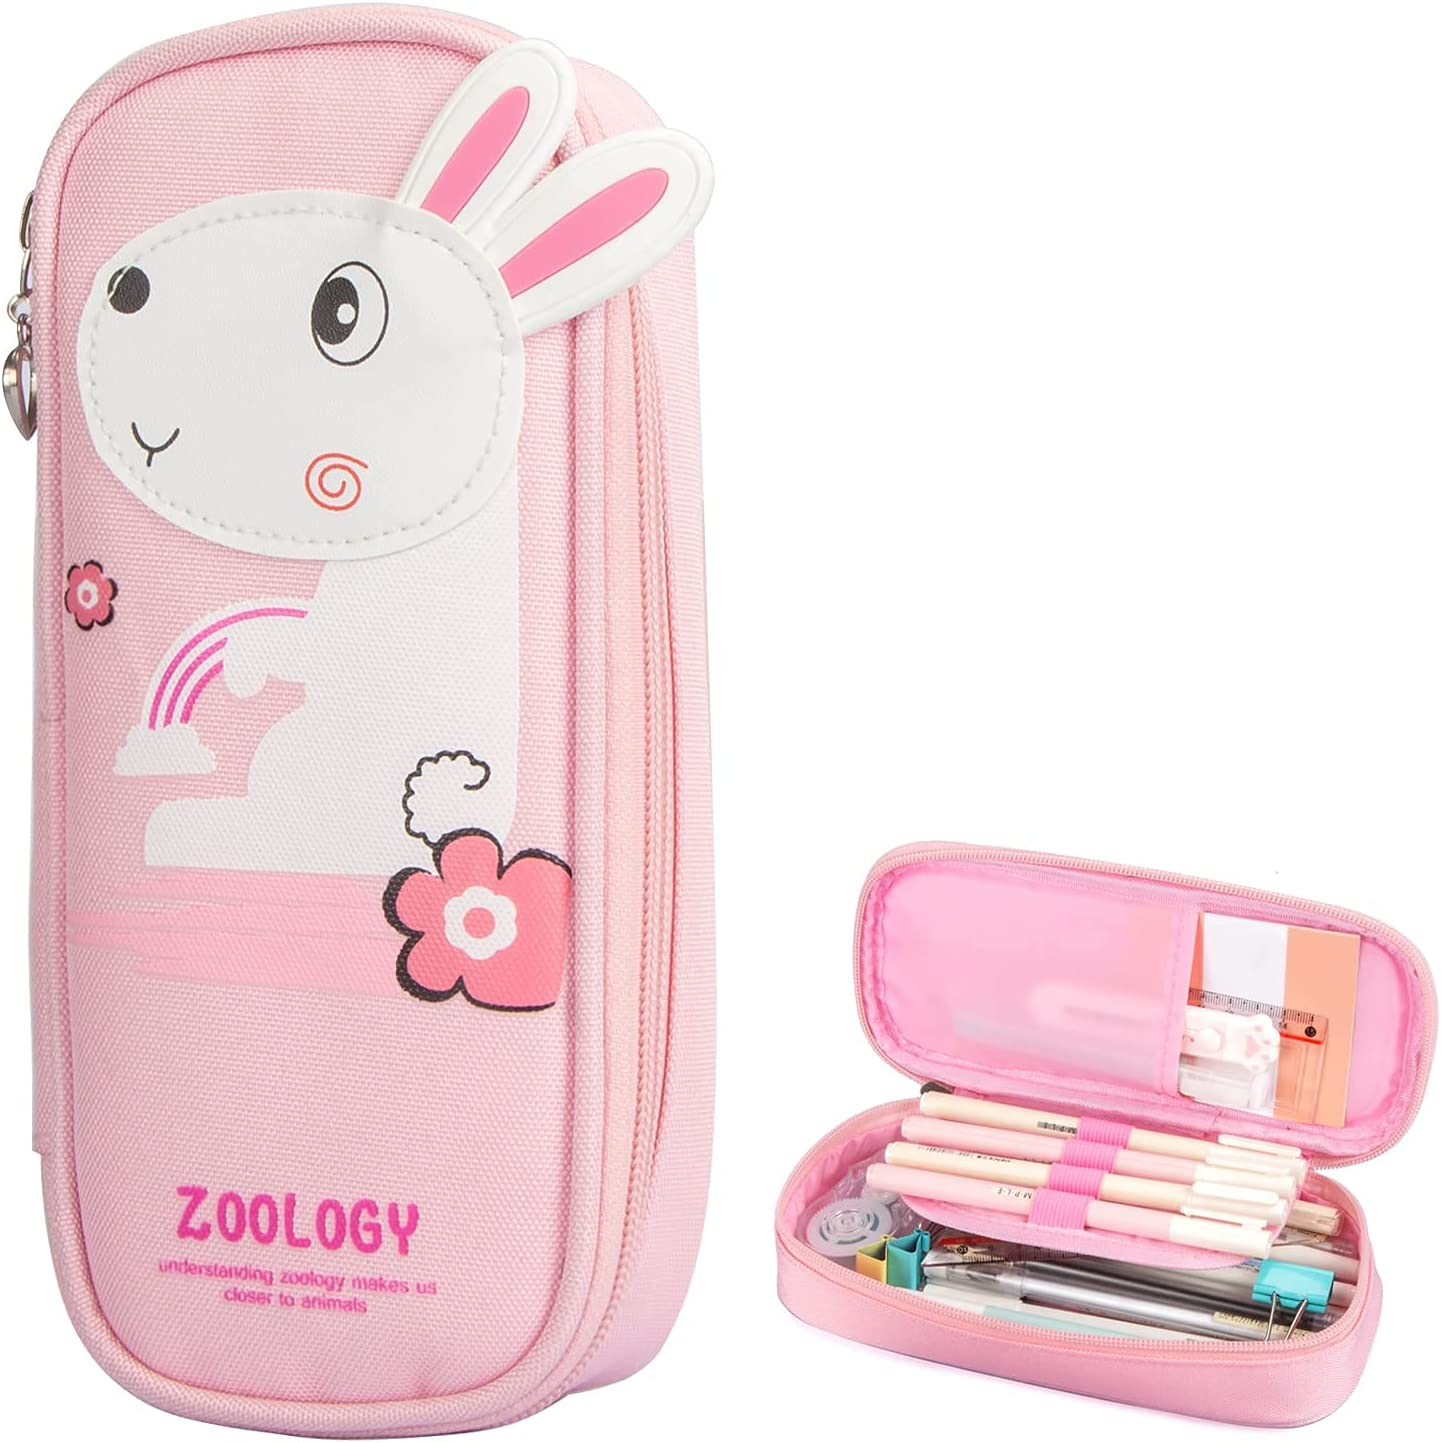 Aobopar Cute Bunny Pencil Case P Bag with Girls' trend rank NEW before selling ☆ Zipper